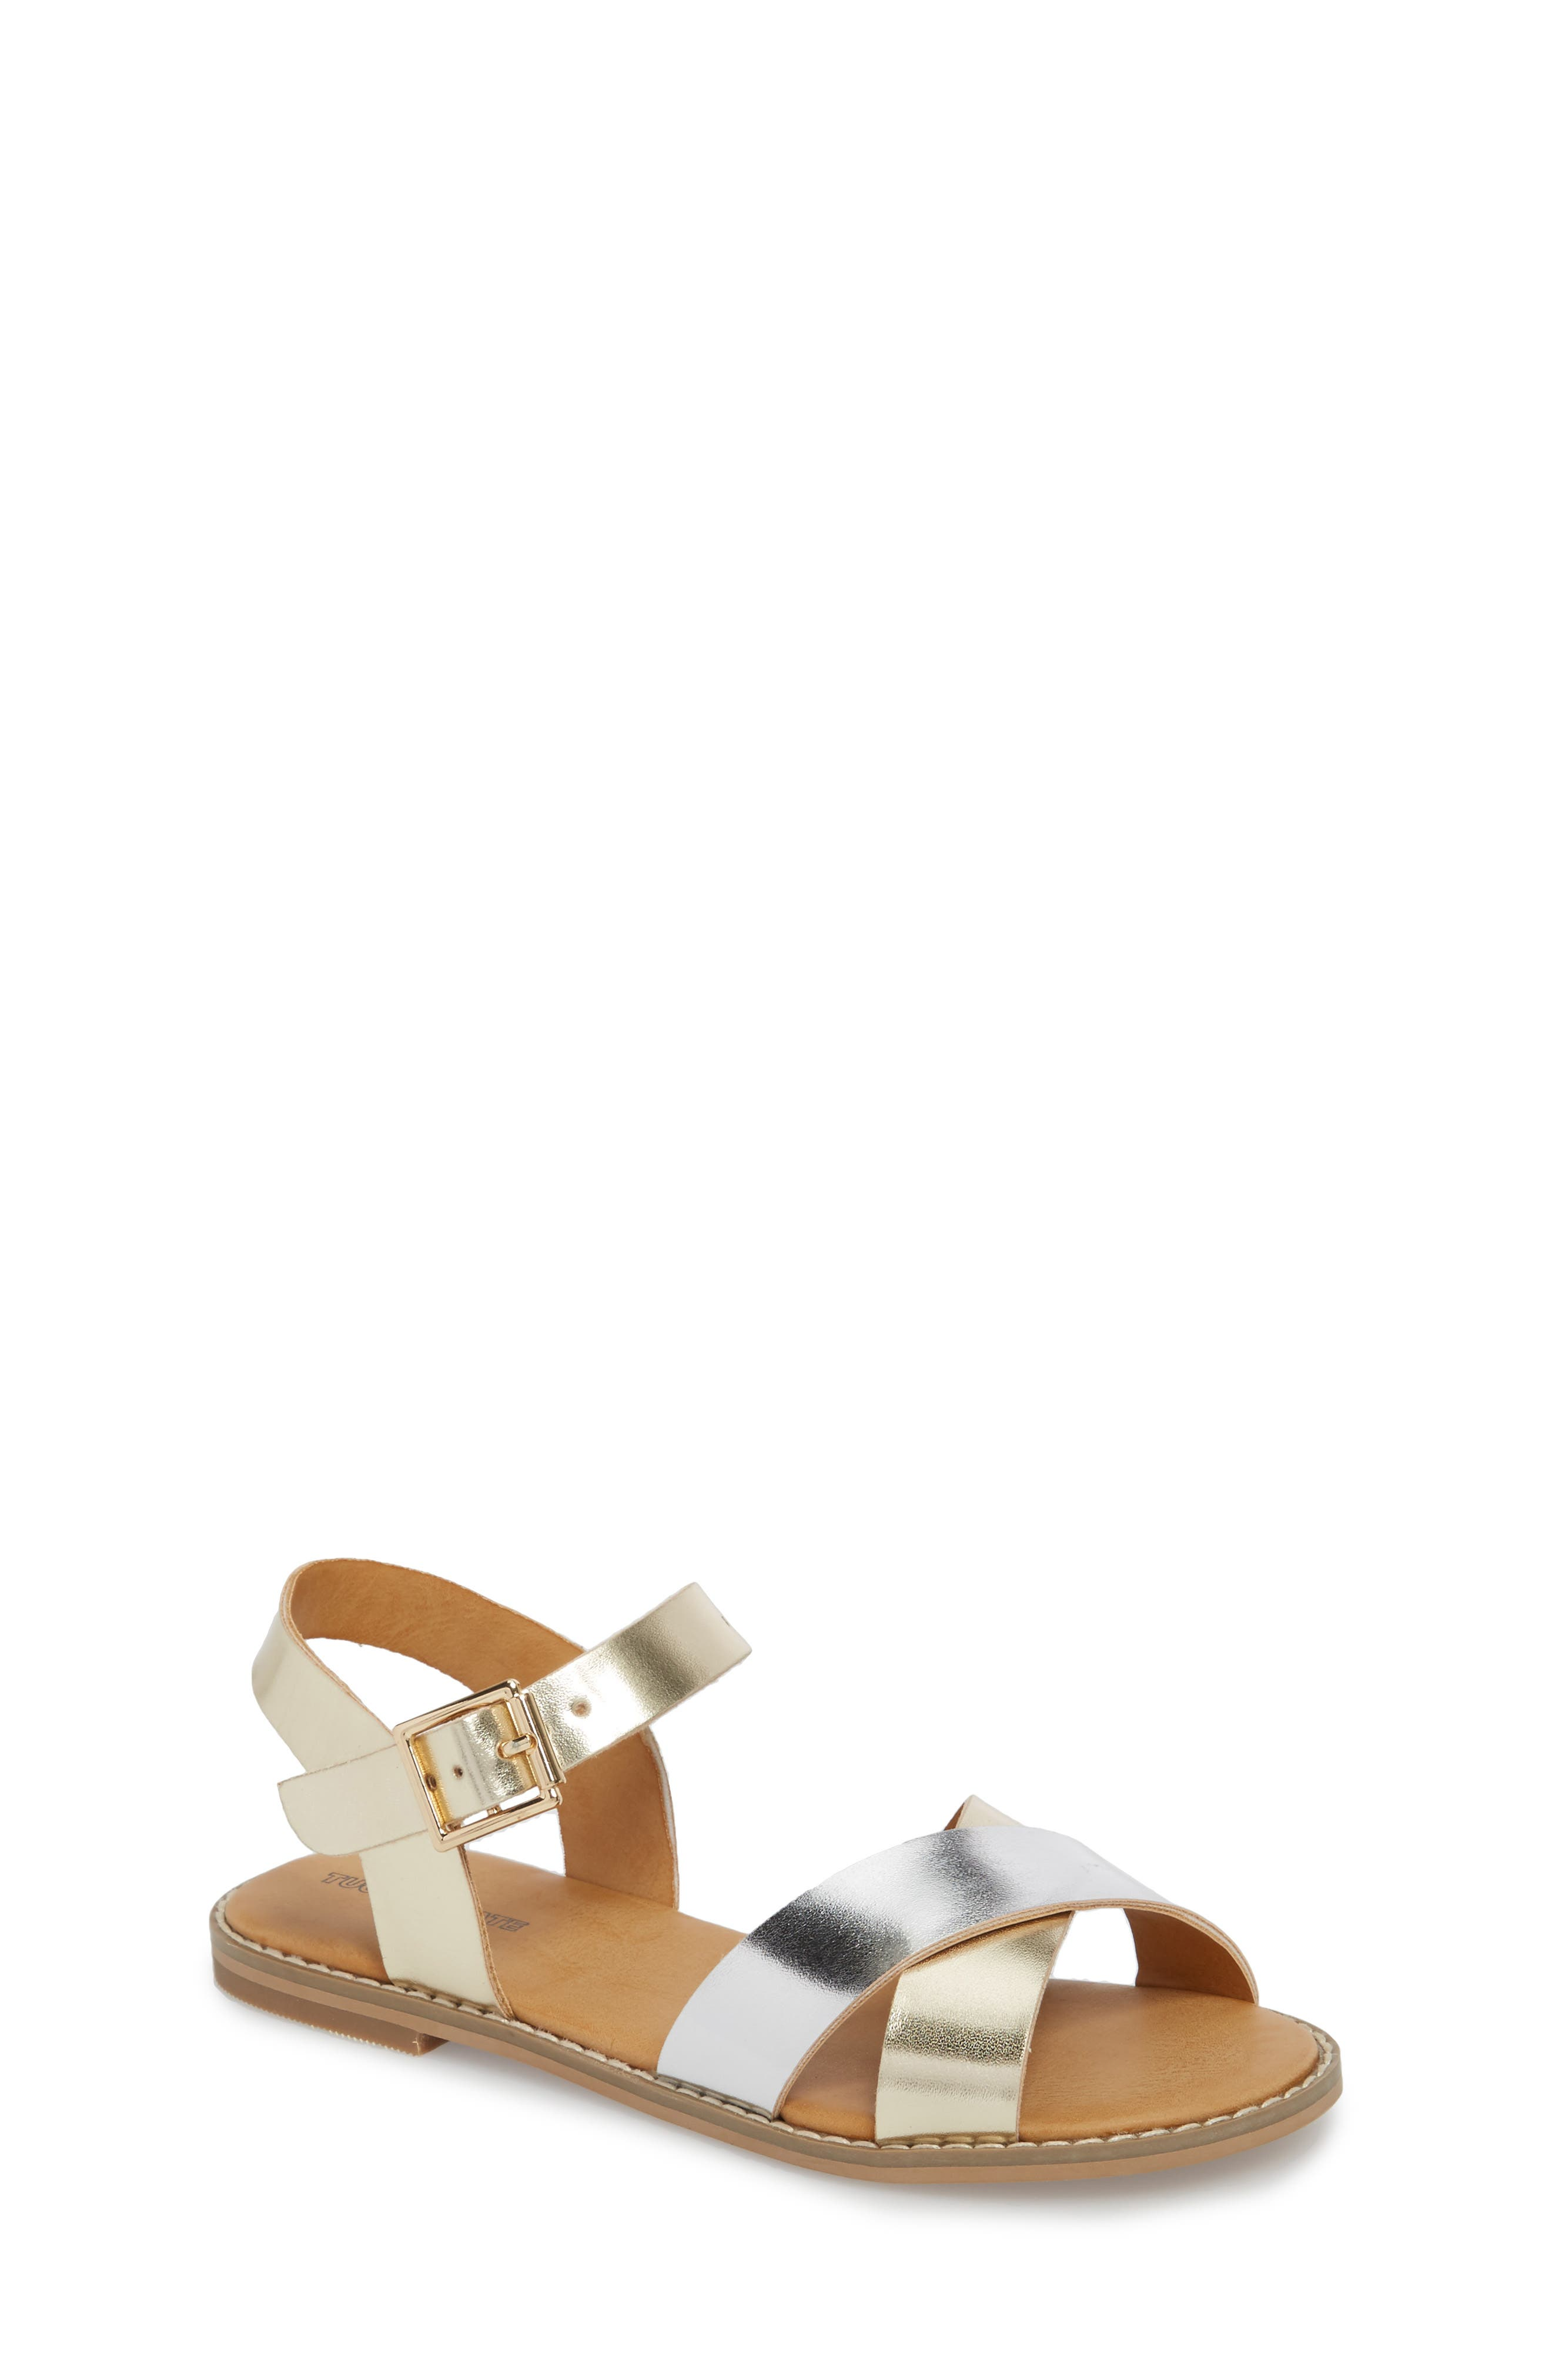 Arya Cross Strap Sandal,                         Main,                         color, SILVER FAUX LEATHER